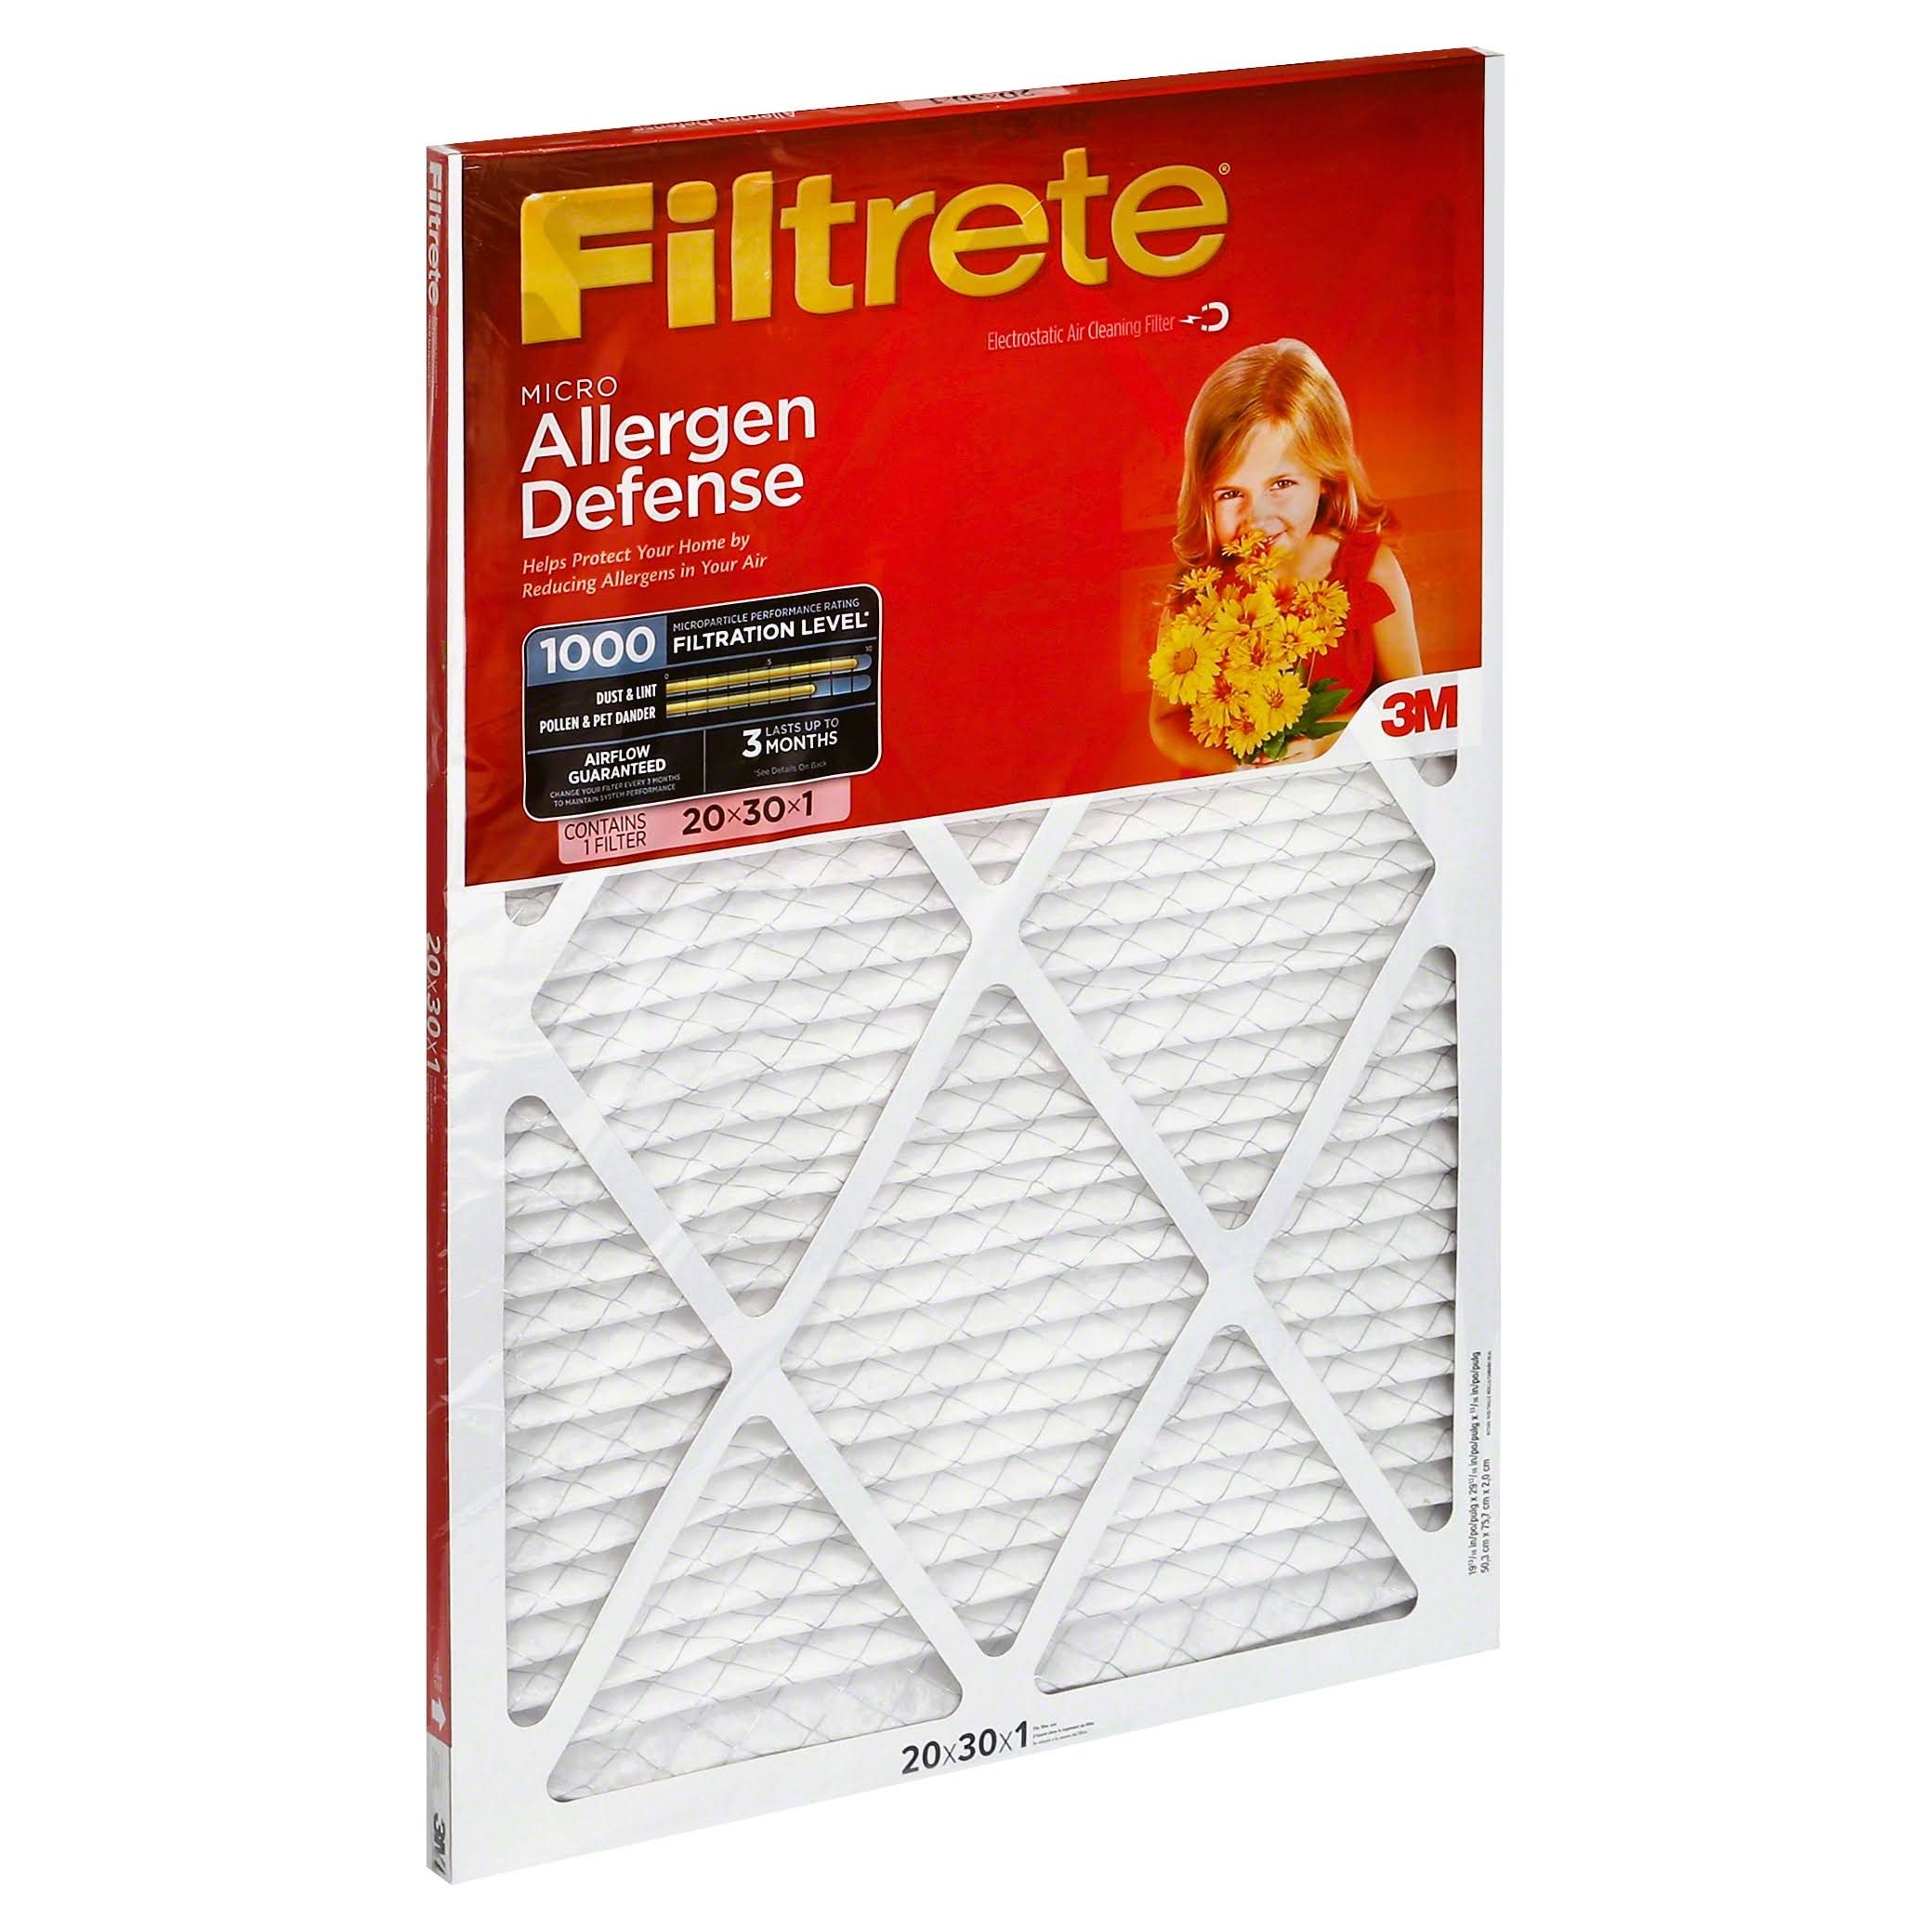 "3M Filtrete Micro Allergen Defense Filter - White, 20"" X 30"", 6ct"